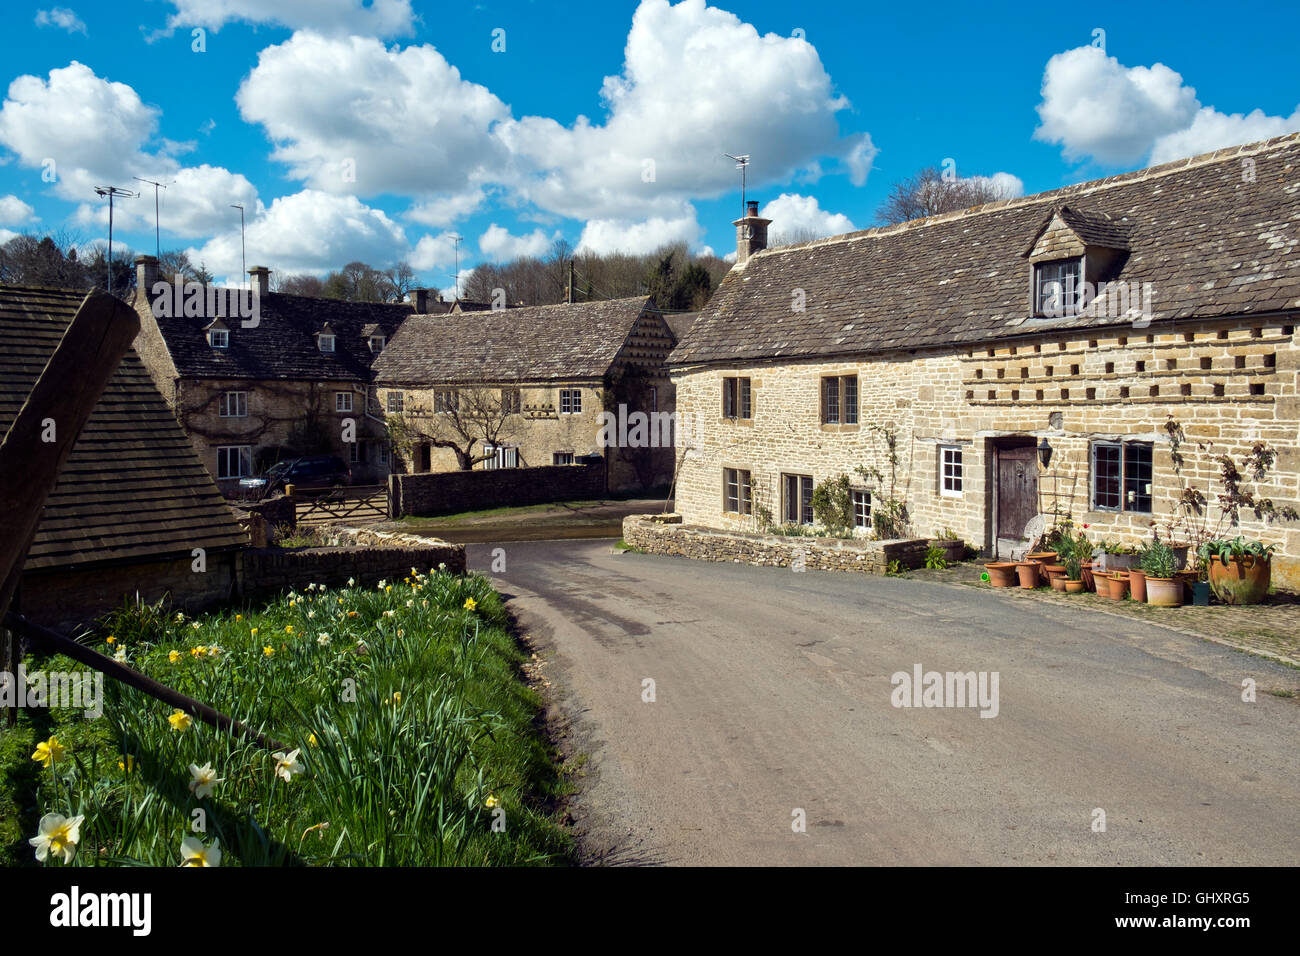 Picturesque Cotswold cottages cluster around the Dunt Stream ford in spring sunshine, Duntisbourne Leer, Cotswolds, - Stock Image